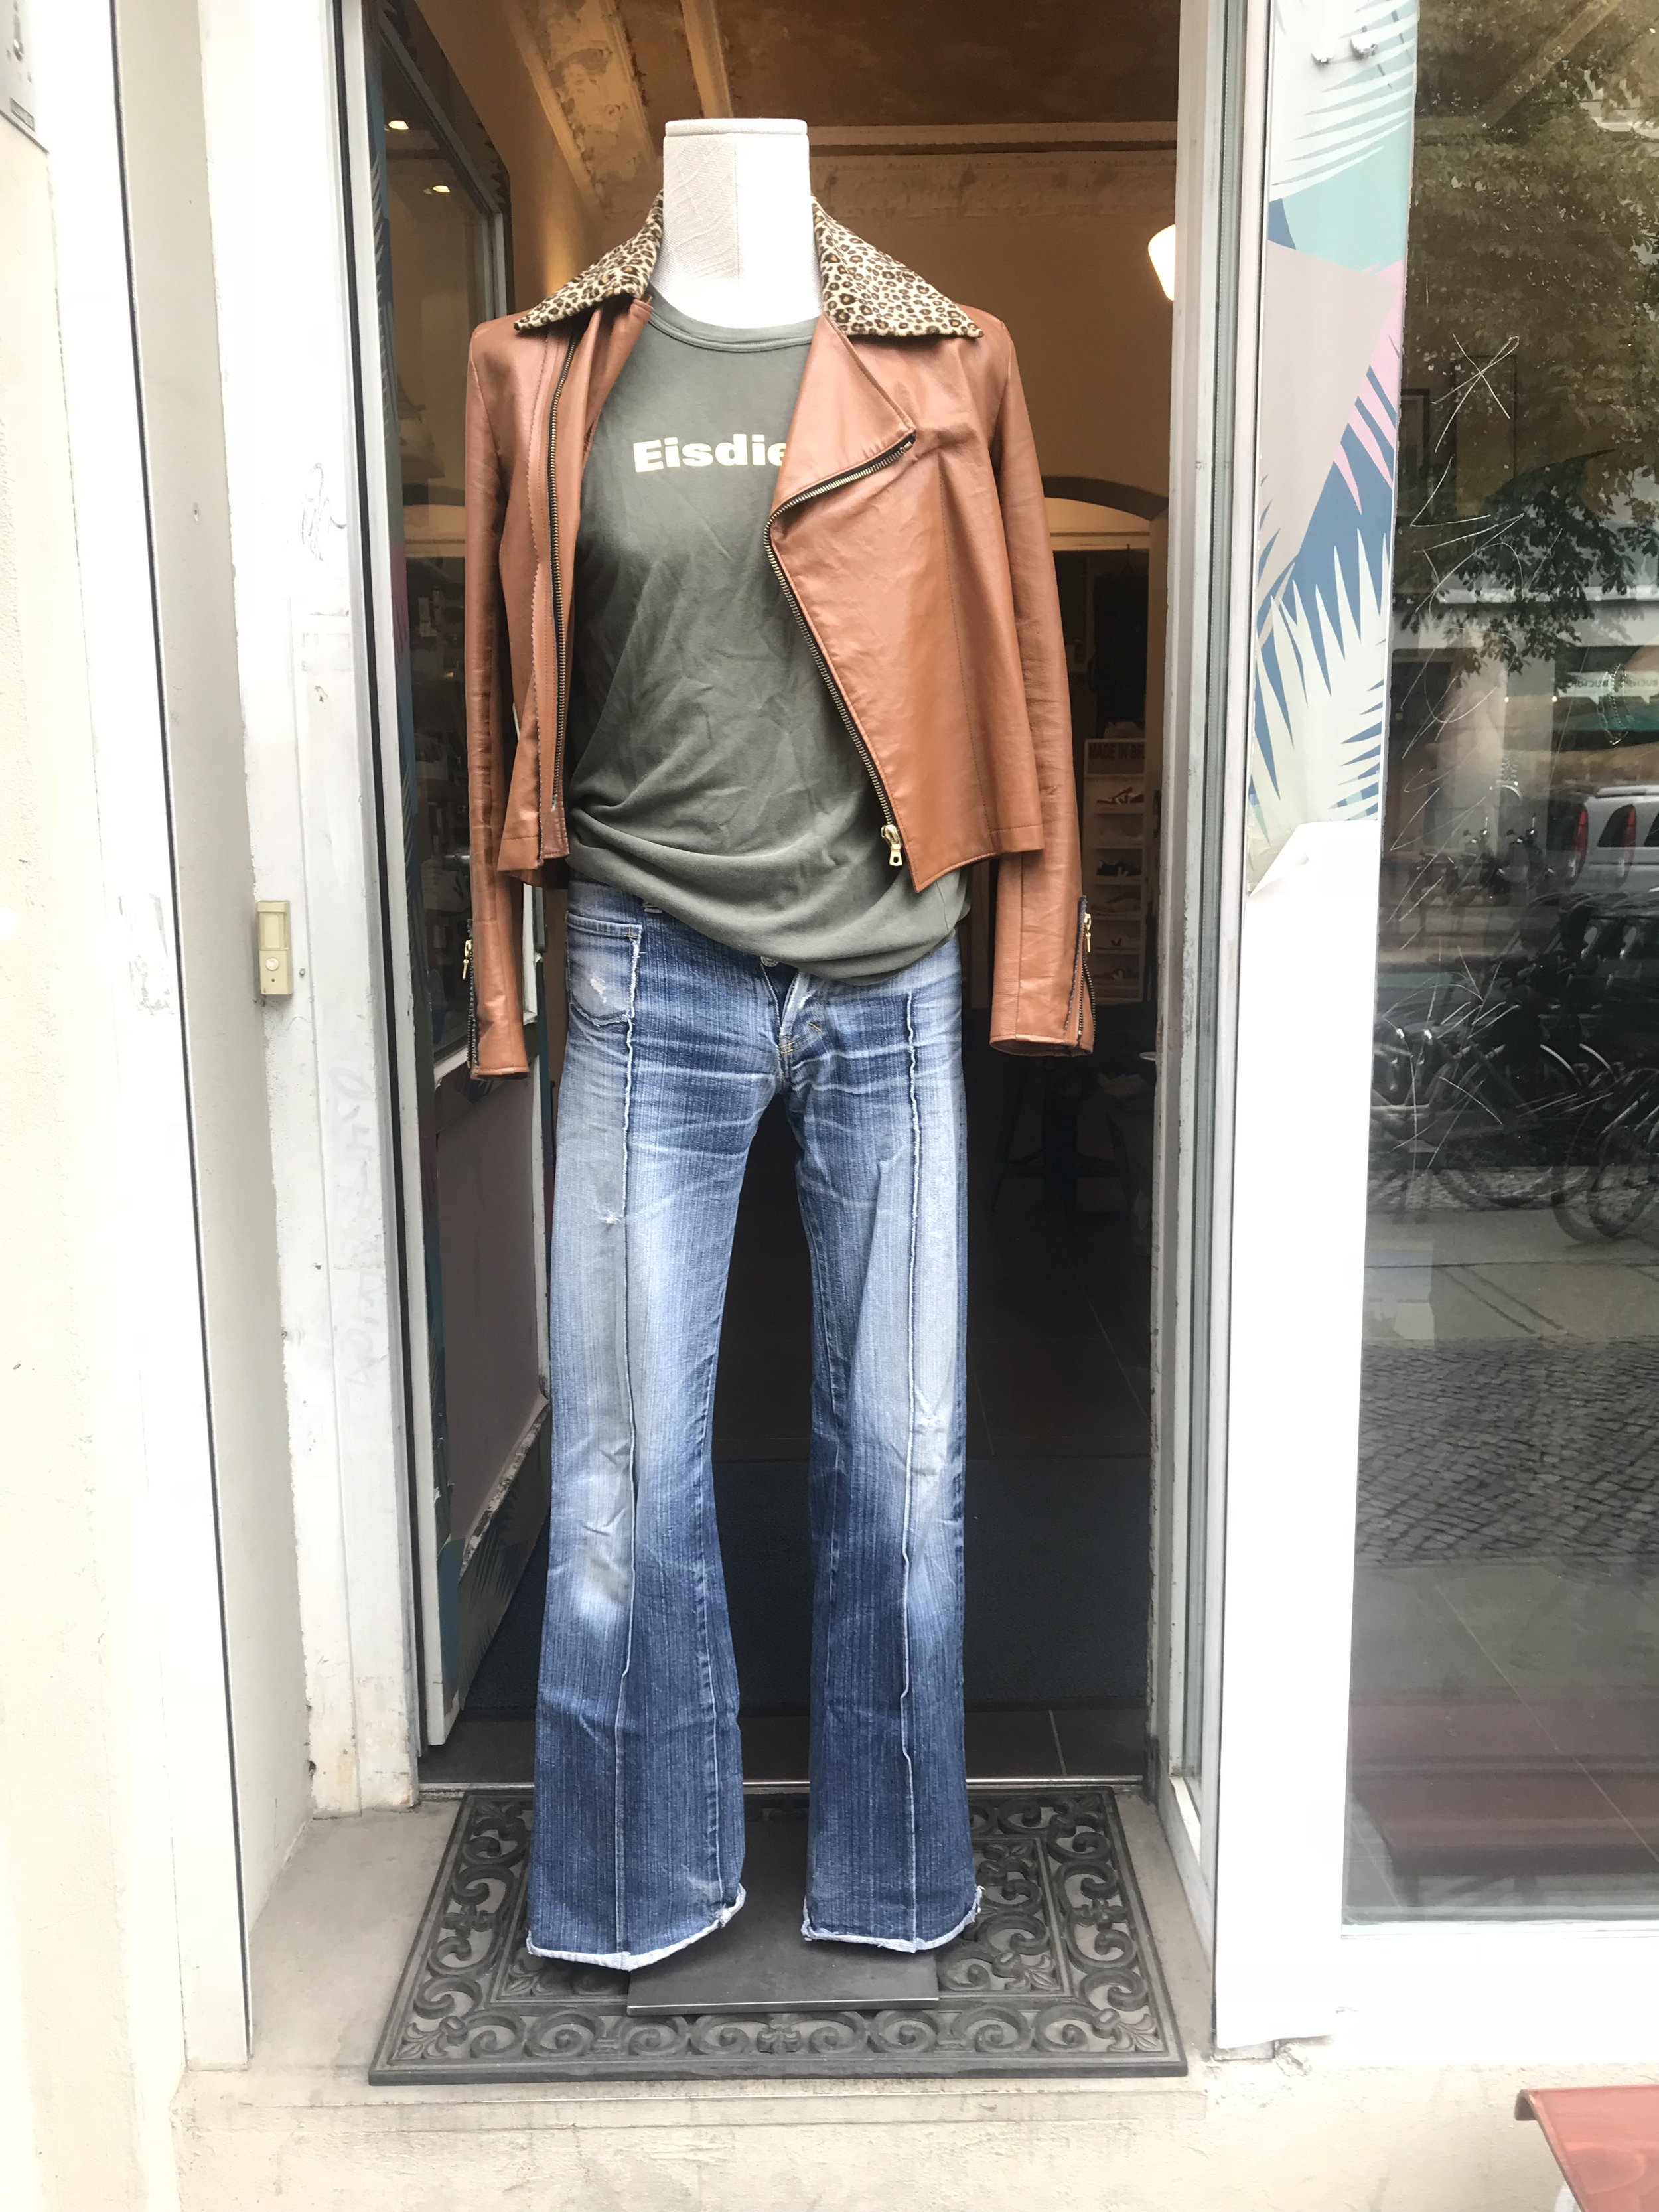 """Director´s Cut  """"Discount"""" boot cut jeans from 1999/ Eisdieler  recycled army t-shirt from 1996/ Director´s   Cut  prototype jacket"""